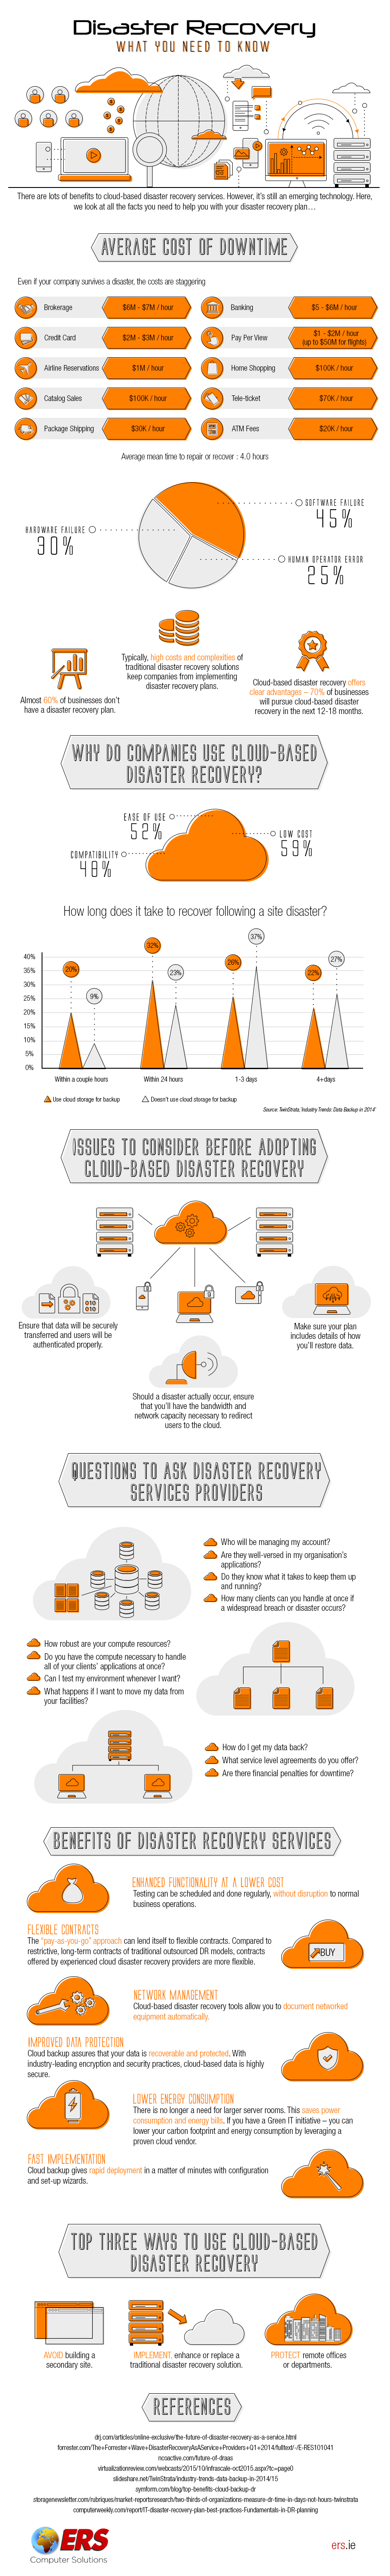 Disaster-Recovery-What-You-Need-To-Know-002-0d03a813042ce844624d61f3903a313b88d5d12a